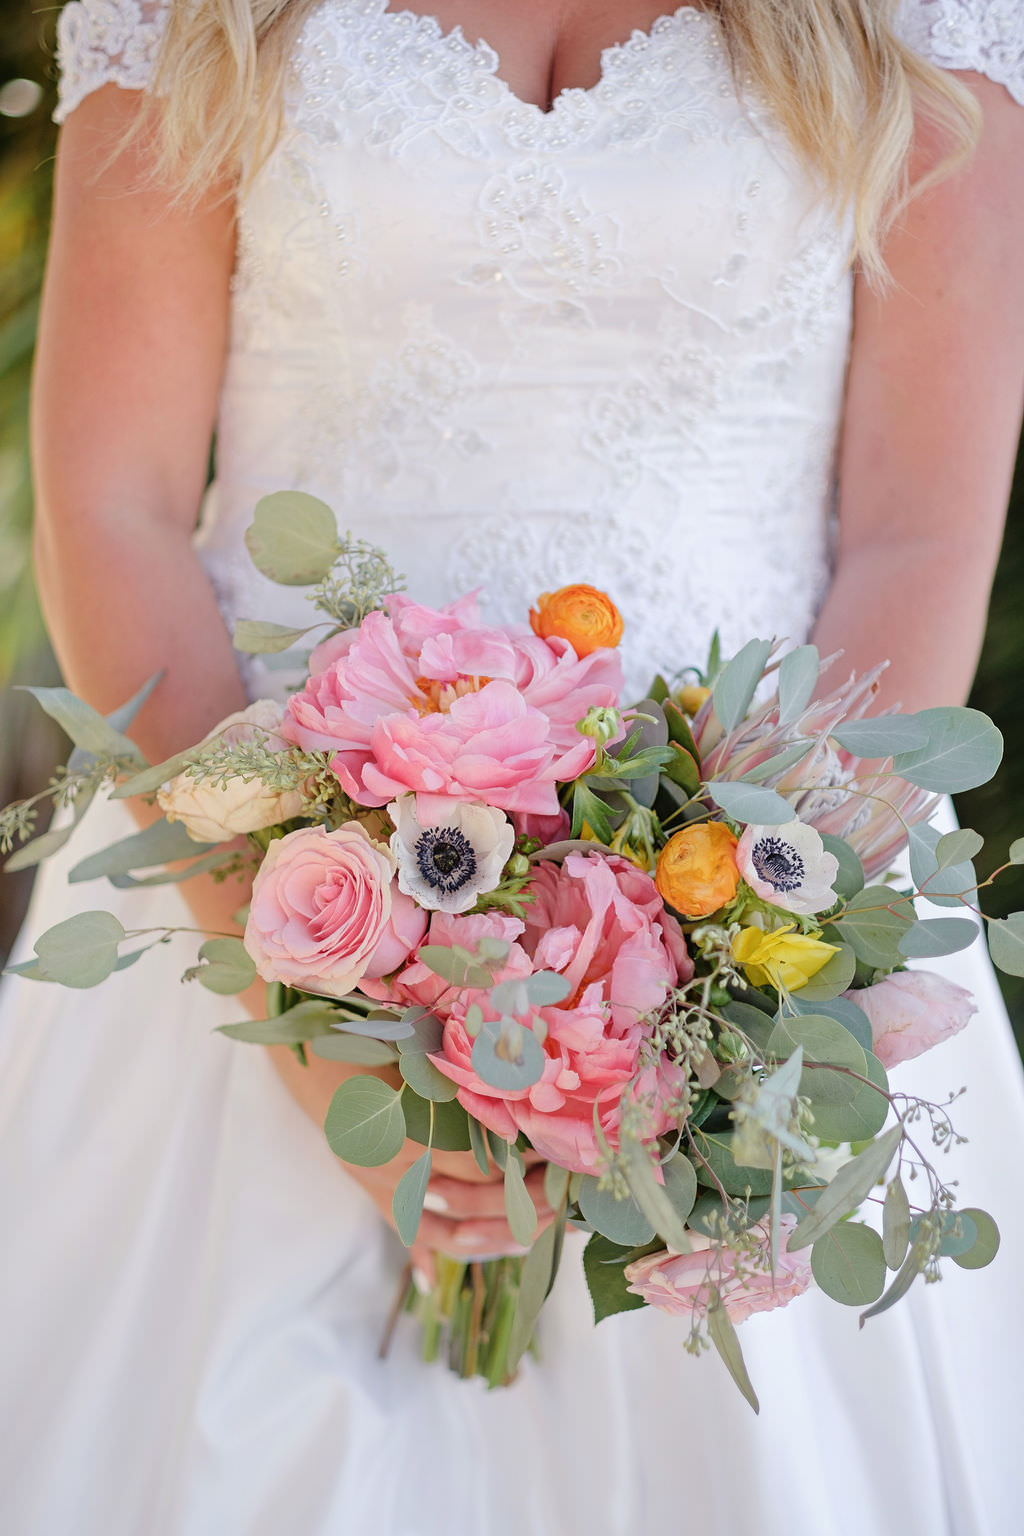 Florida Bride Outdoor Wedding Portrait, Bride in White Satin and Lace Sweetheart Neckline, Cap Sleeve Ballgown Wedding Dress with Bright Pink, Yellow, Ivory and Greenery Floral Bouquet | Tampa Bay Photographer Marc Edwards Photographs